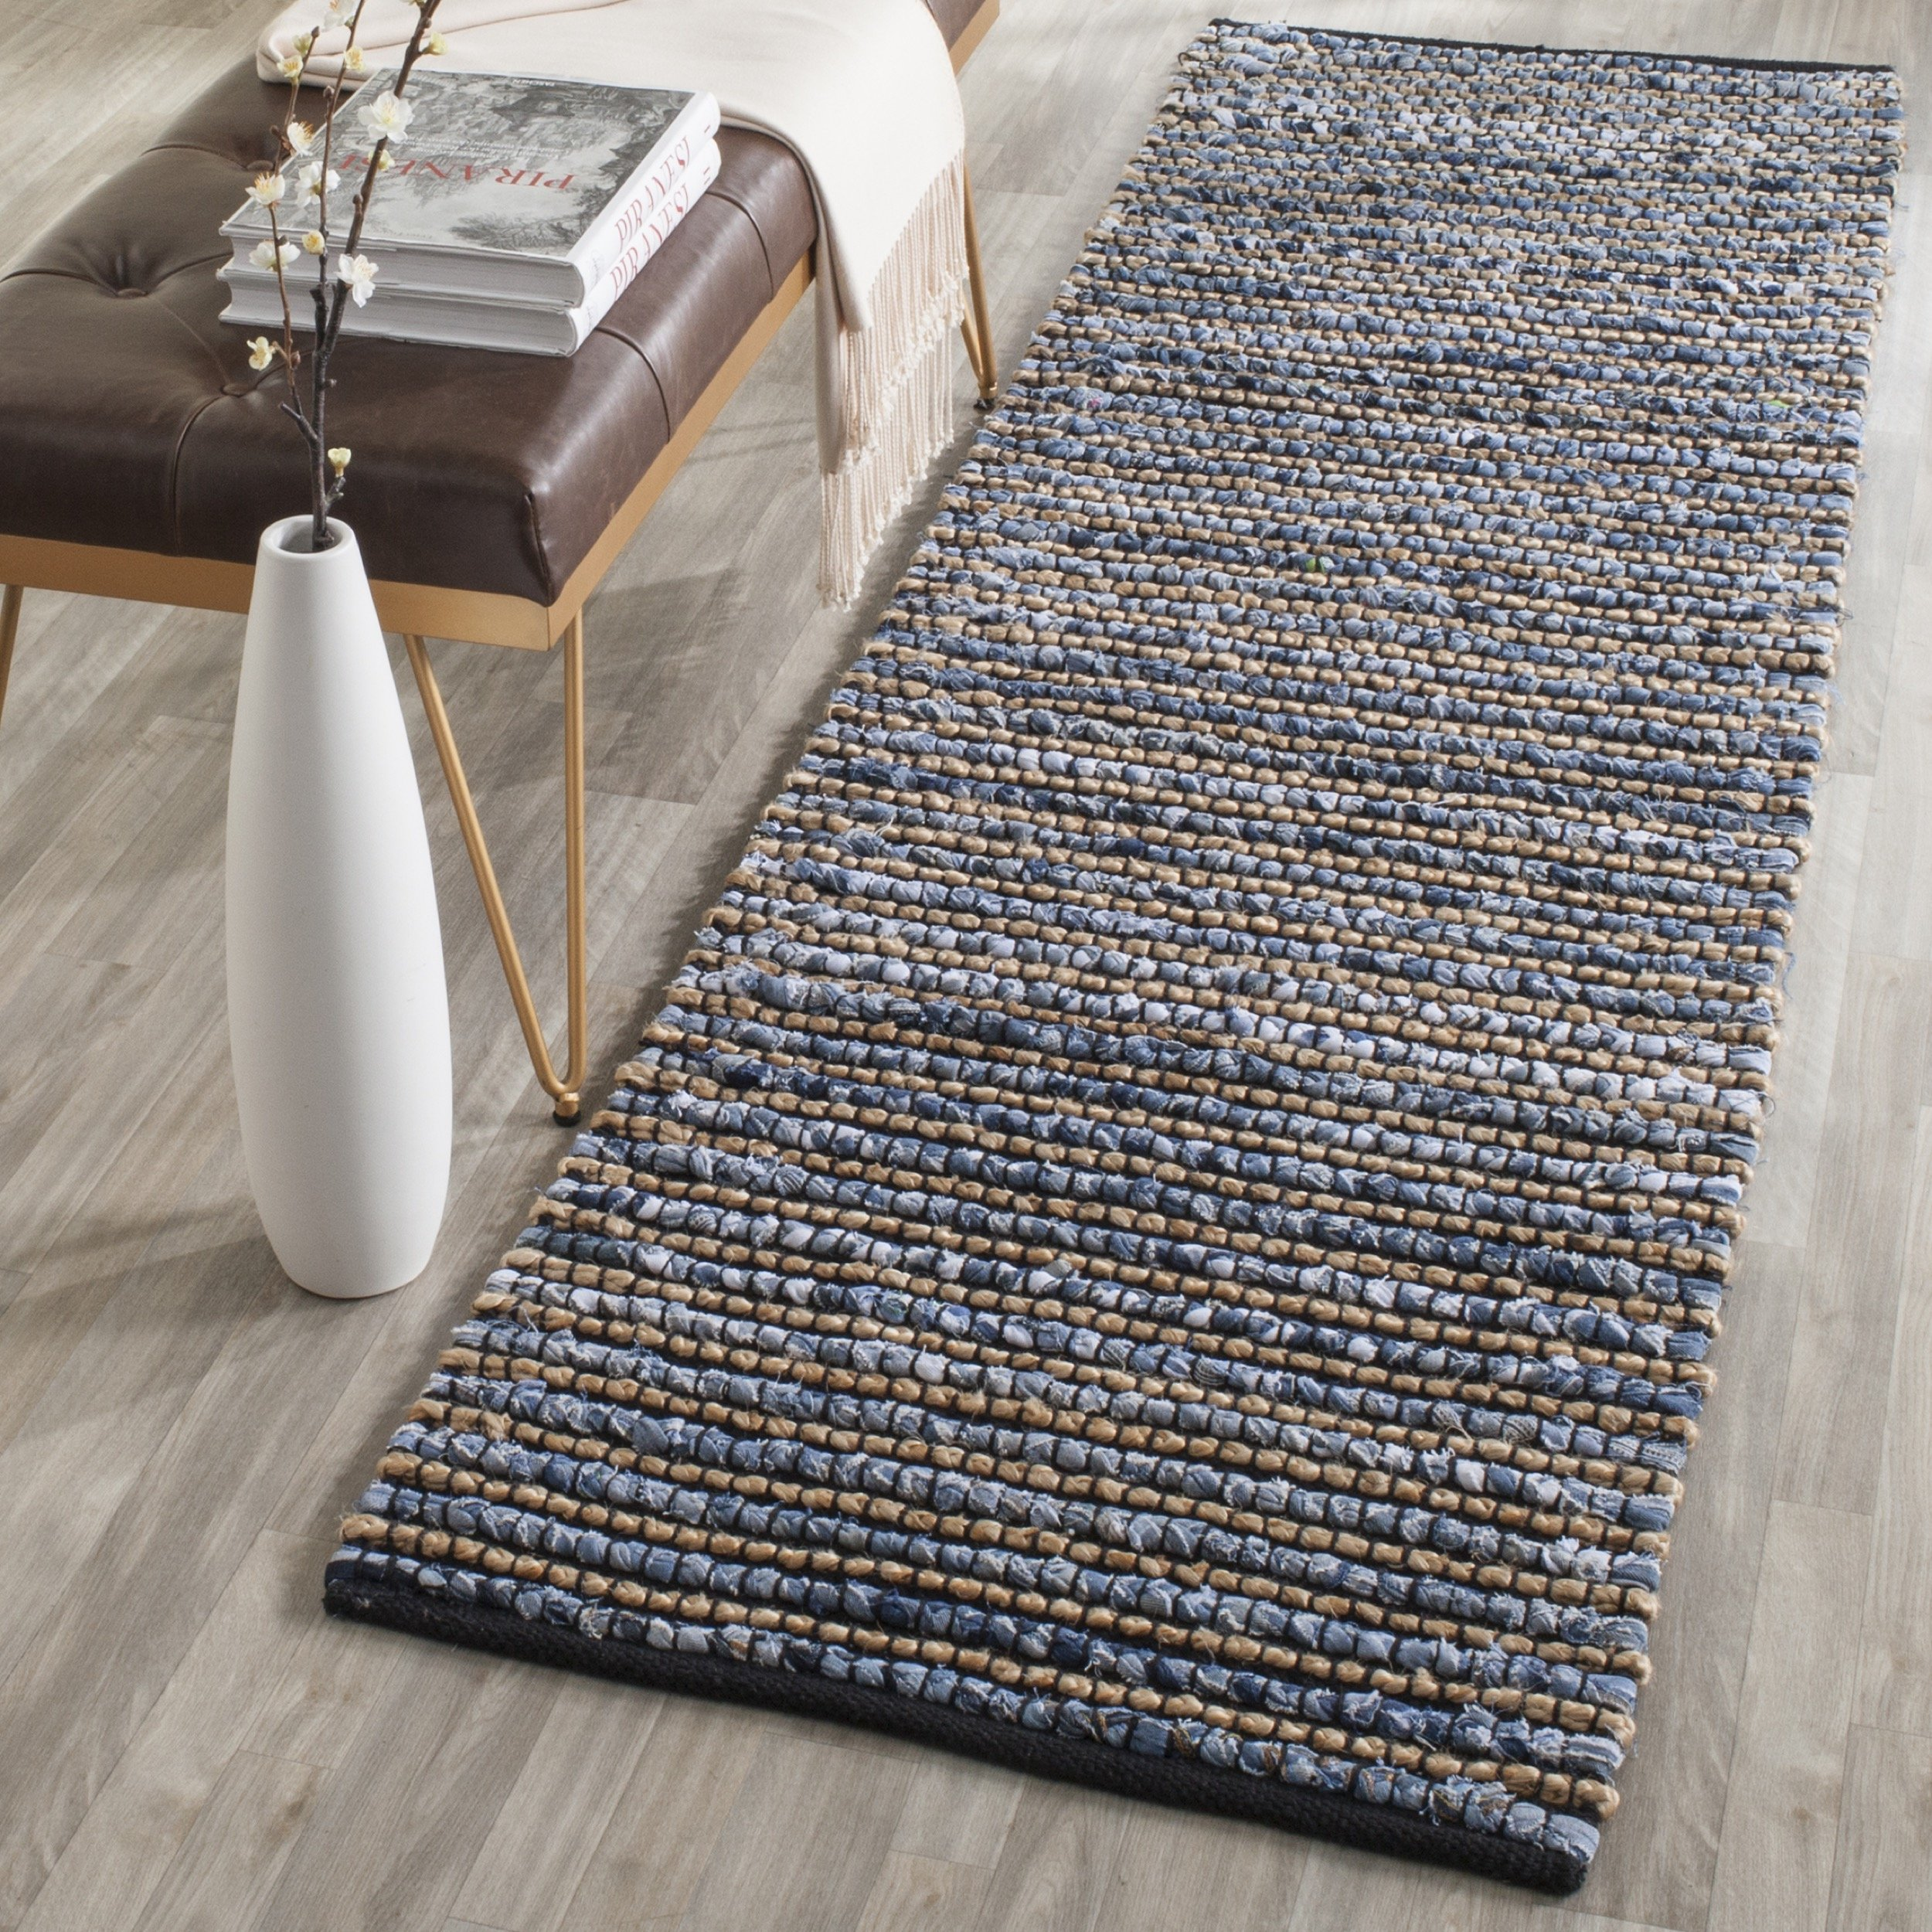 Safavieh Cape Cod Collection CAP365A Hand Woven Blue Jute Runner (2'3'' x 6') by Safavieh (Image #1)